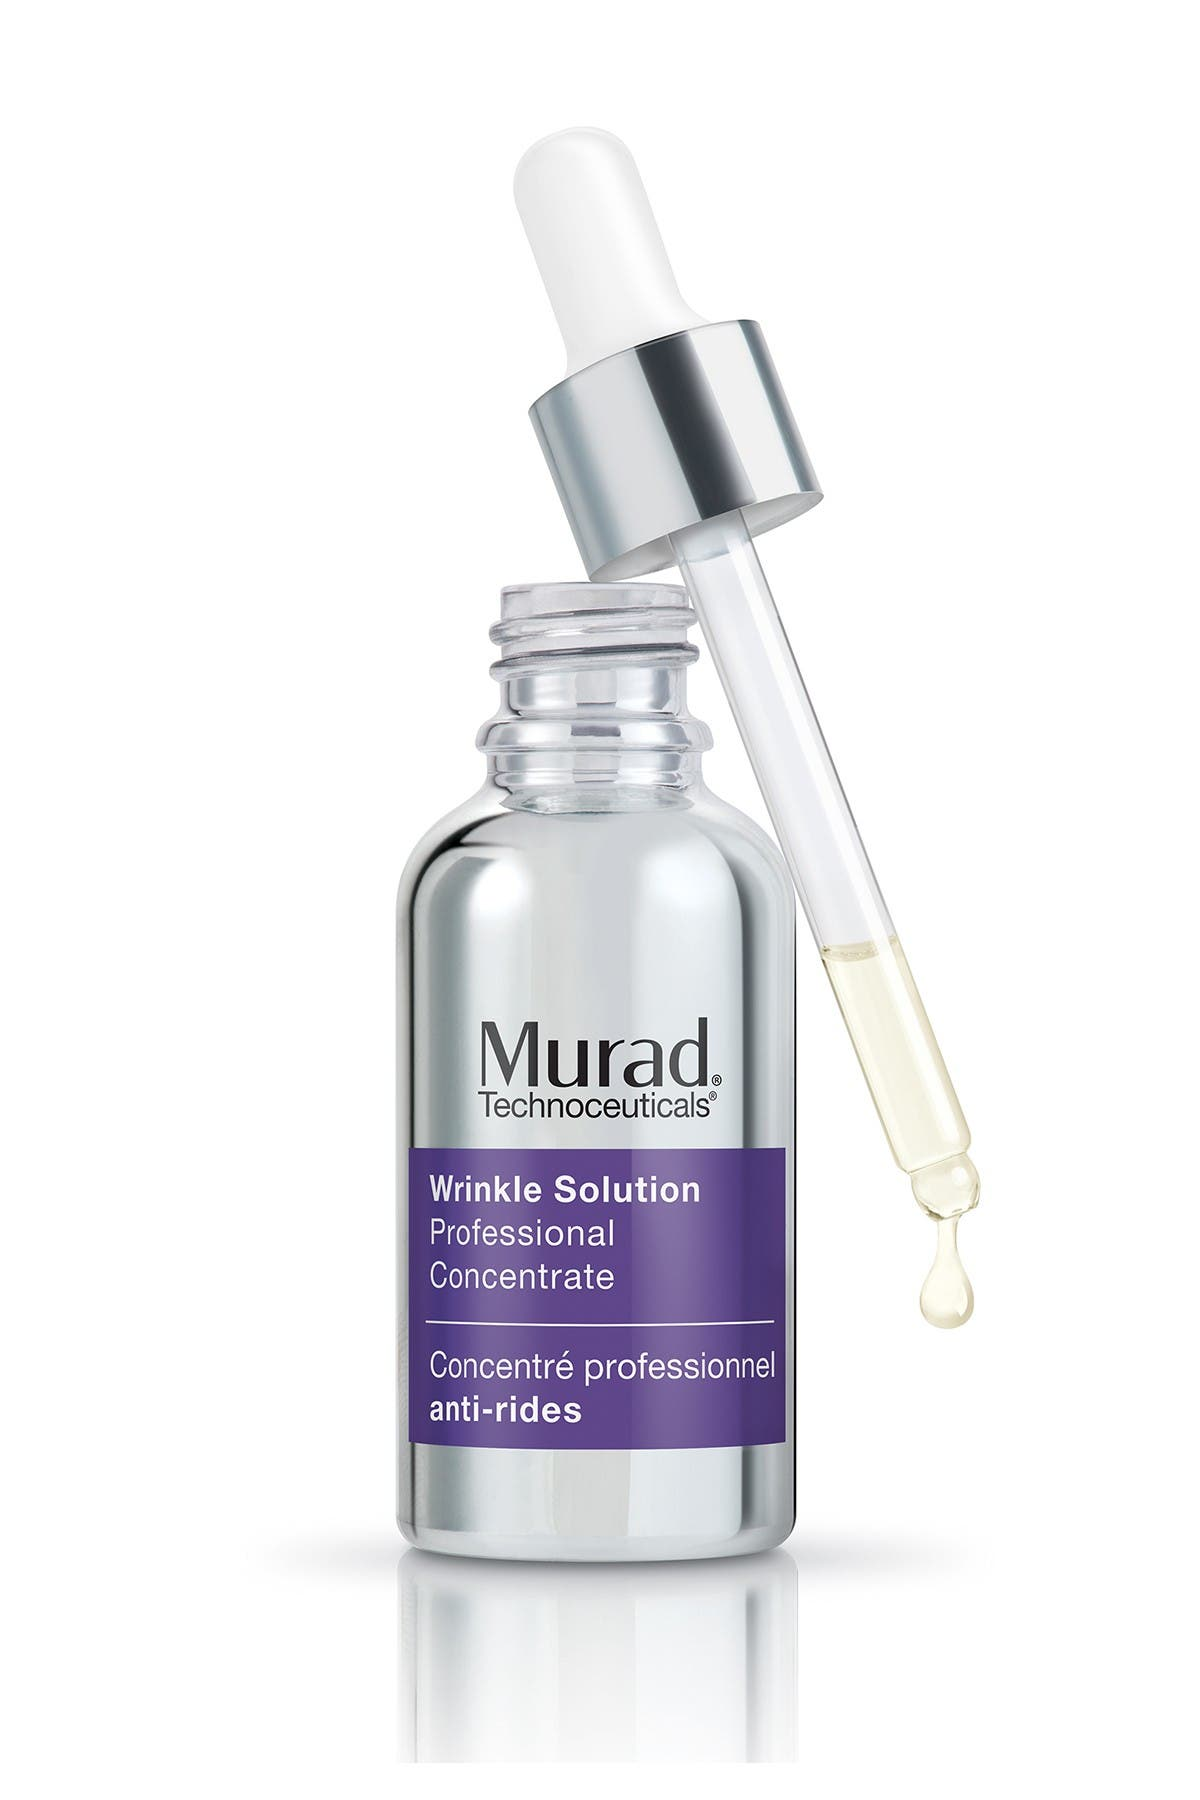 Image of Murad Technoceuticals Wrinkle Solution Professional Concentrate